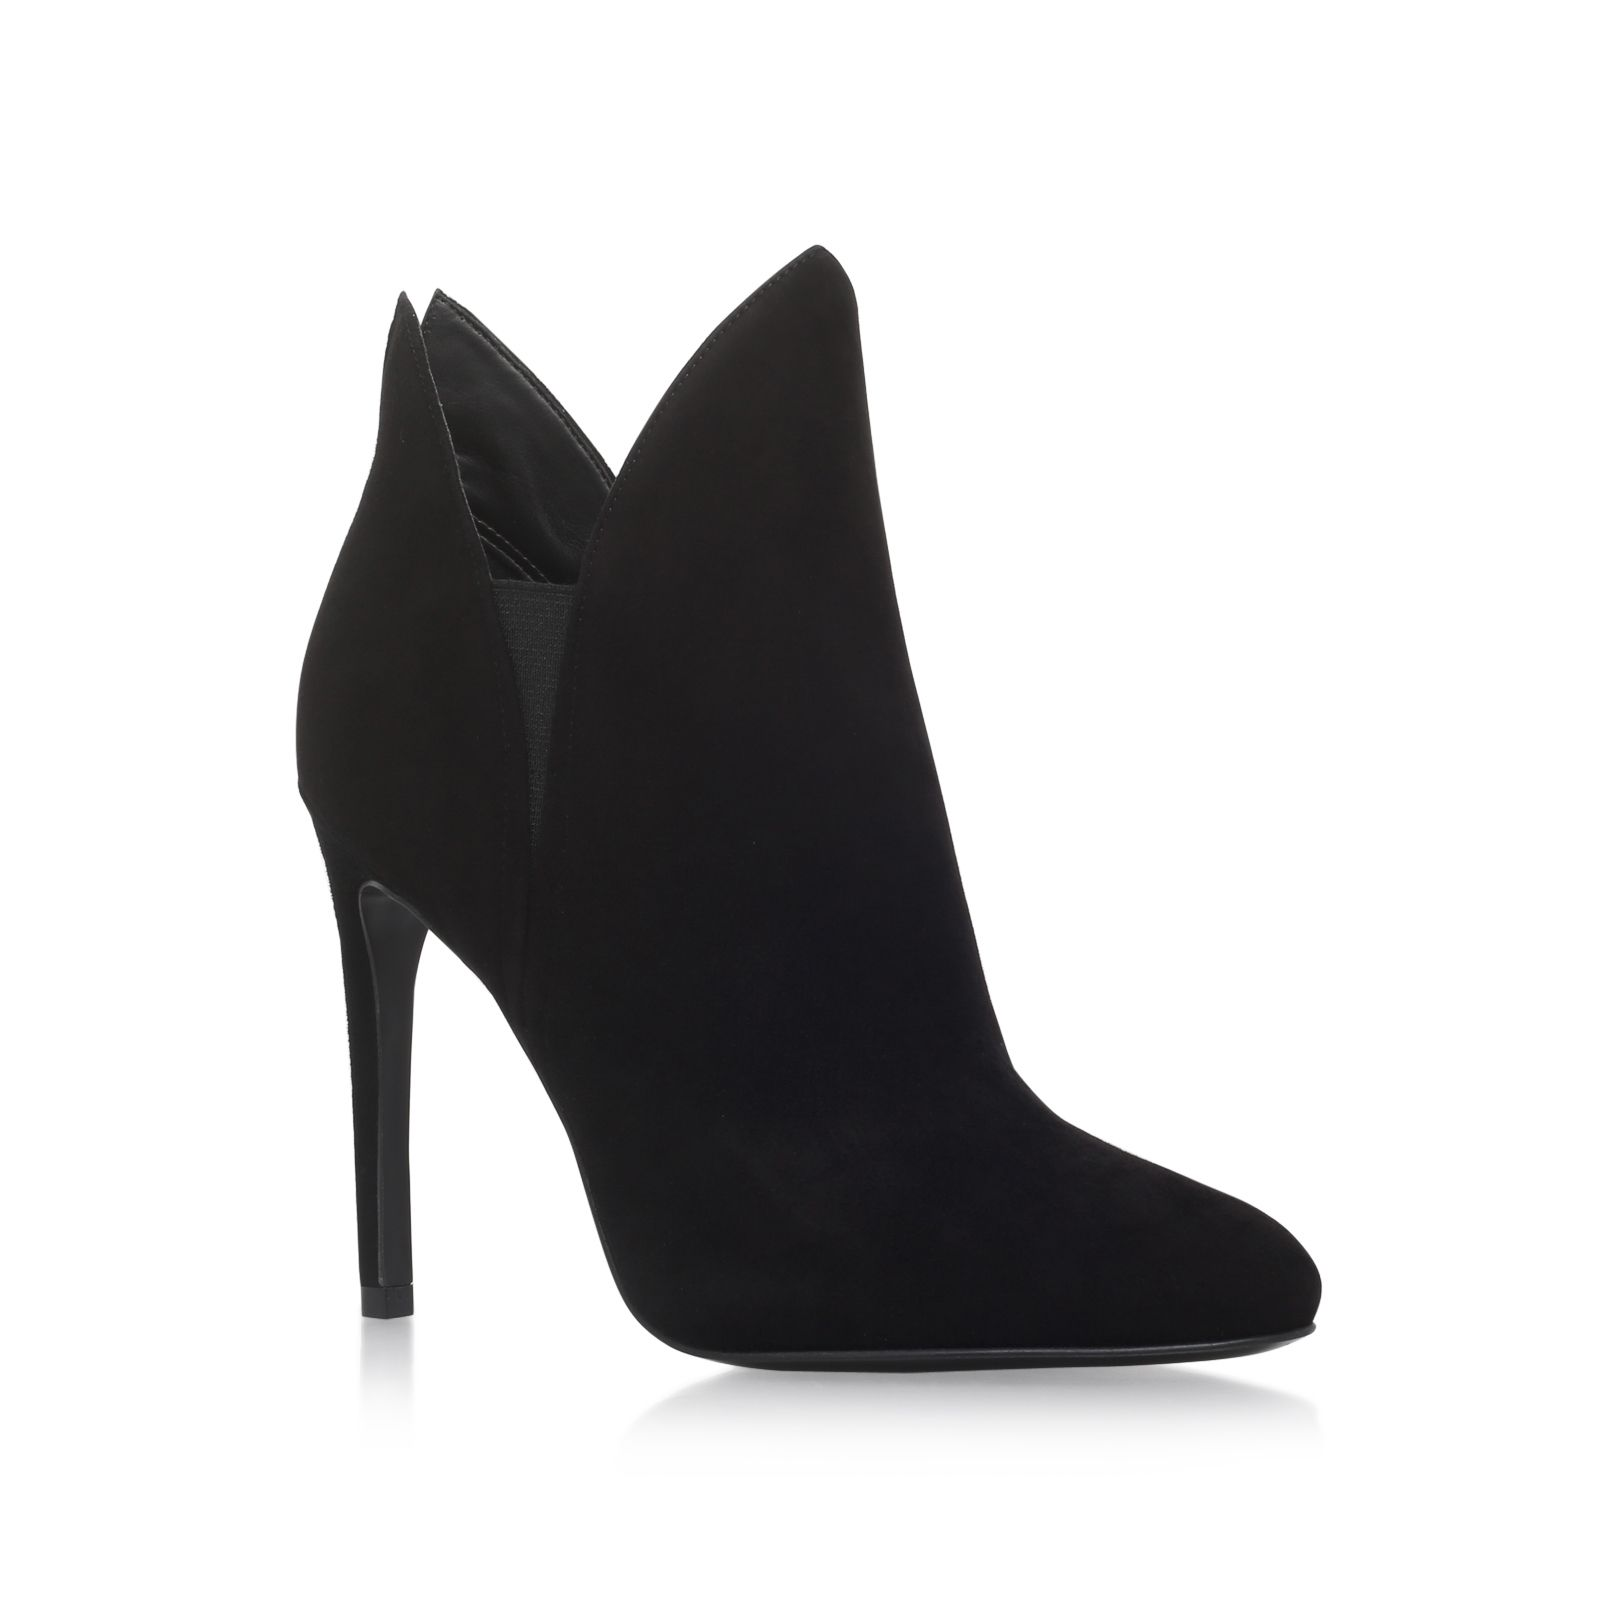 Kendall & Kylie Kendall & Kylie Madison high heel ankle boots, Black